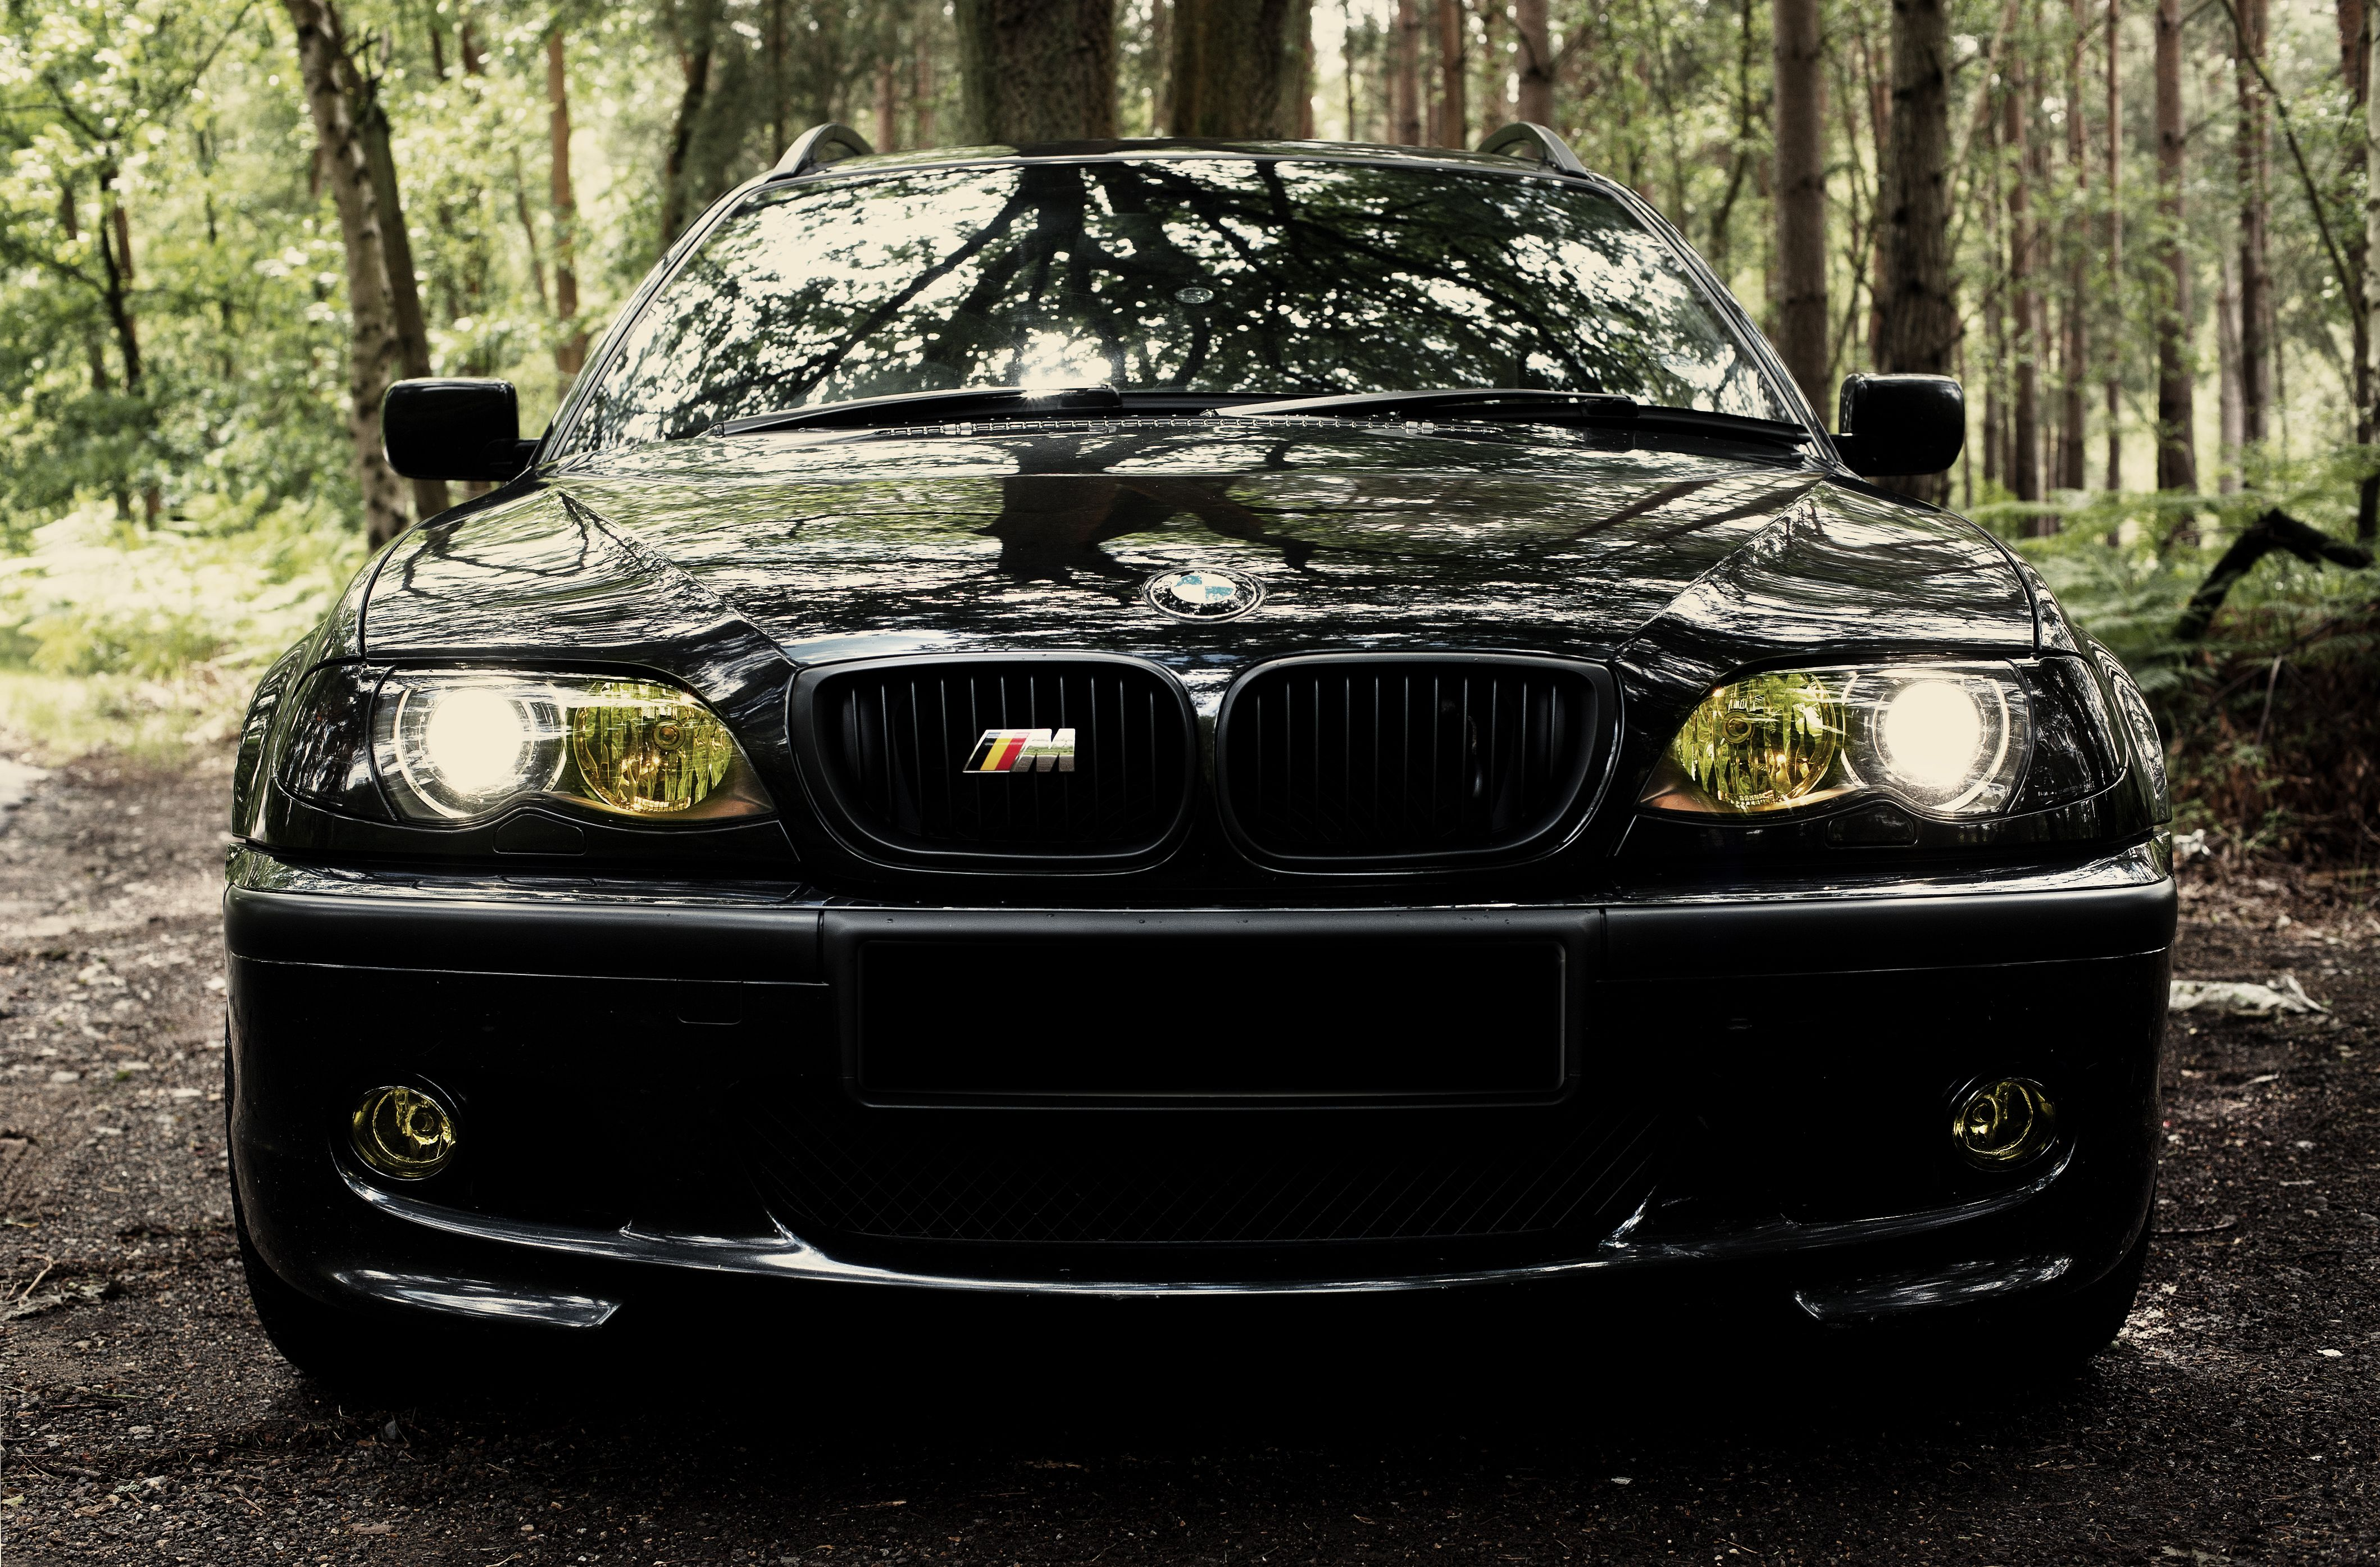 e46 touring bmw pinterest bmw and bmw e46. Black Bedroom Furniture Sets. Home Design Ideas